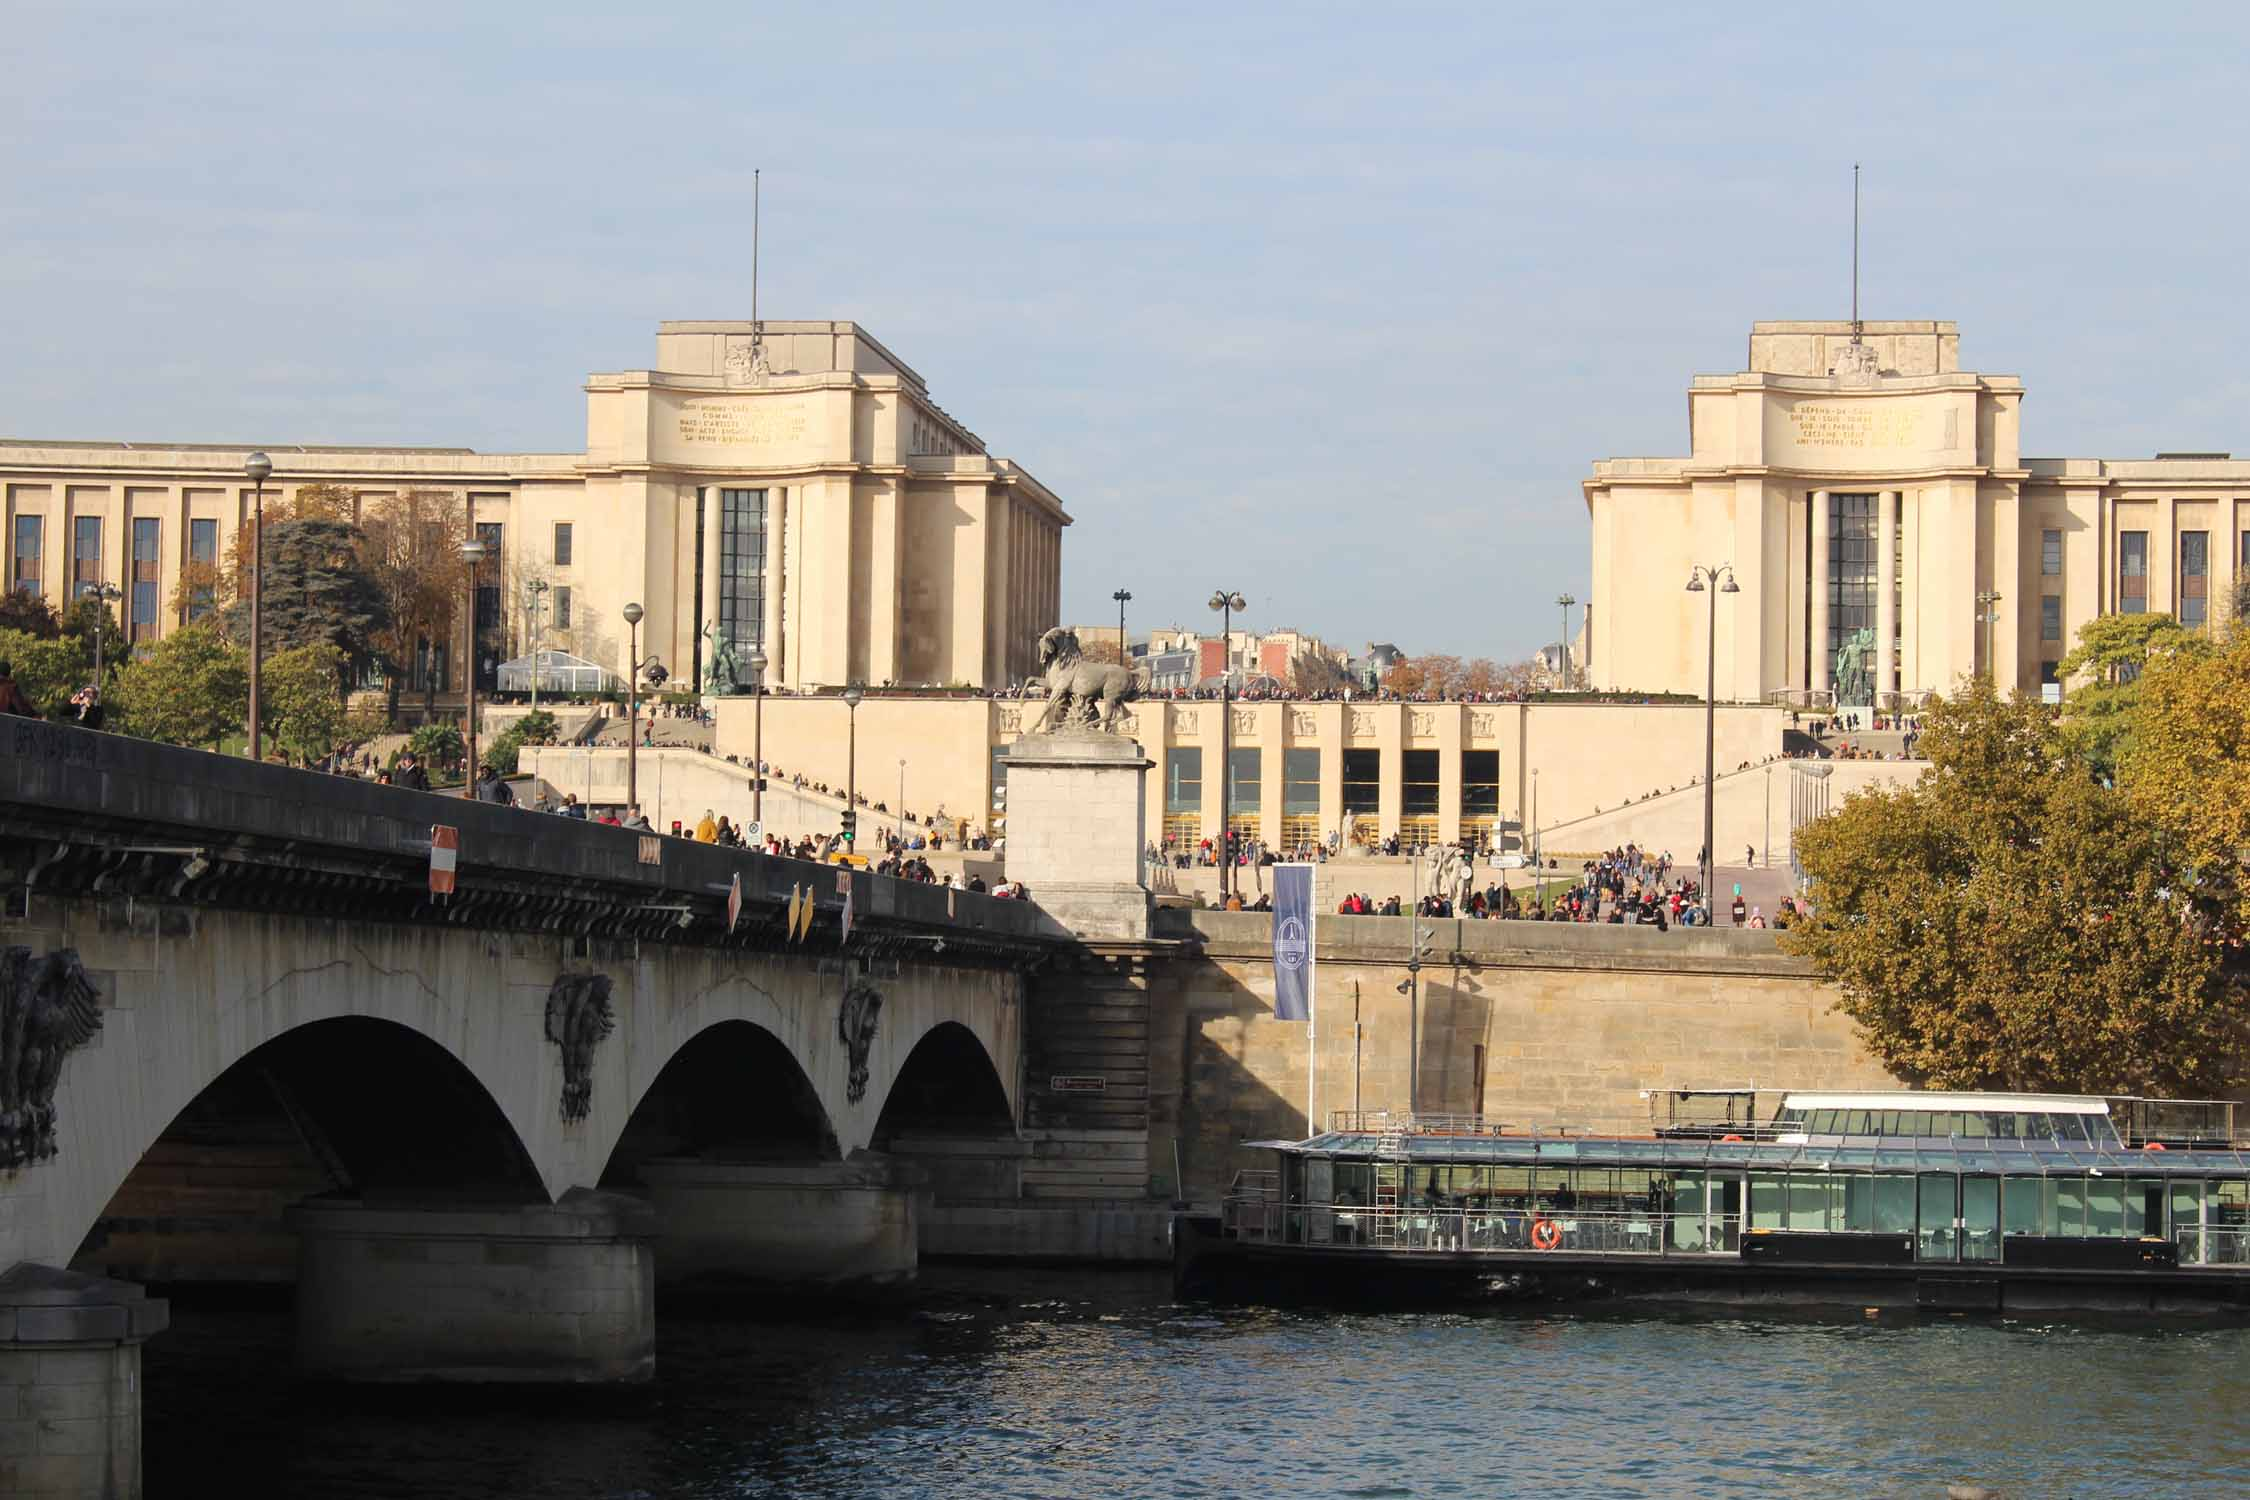 Paris, palais de Chaillot, Seine river